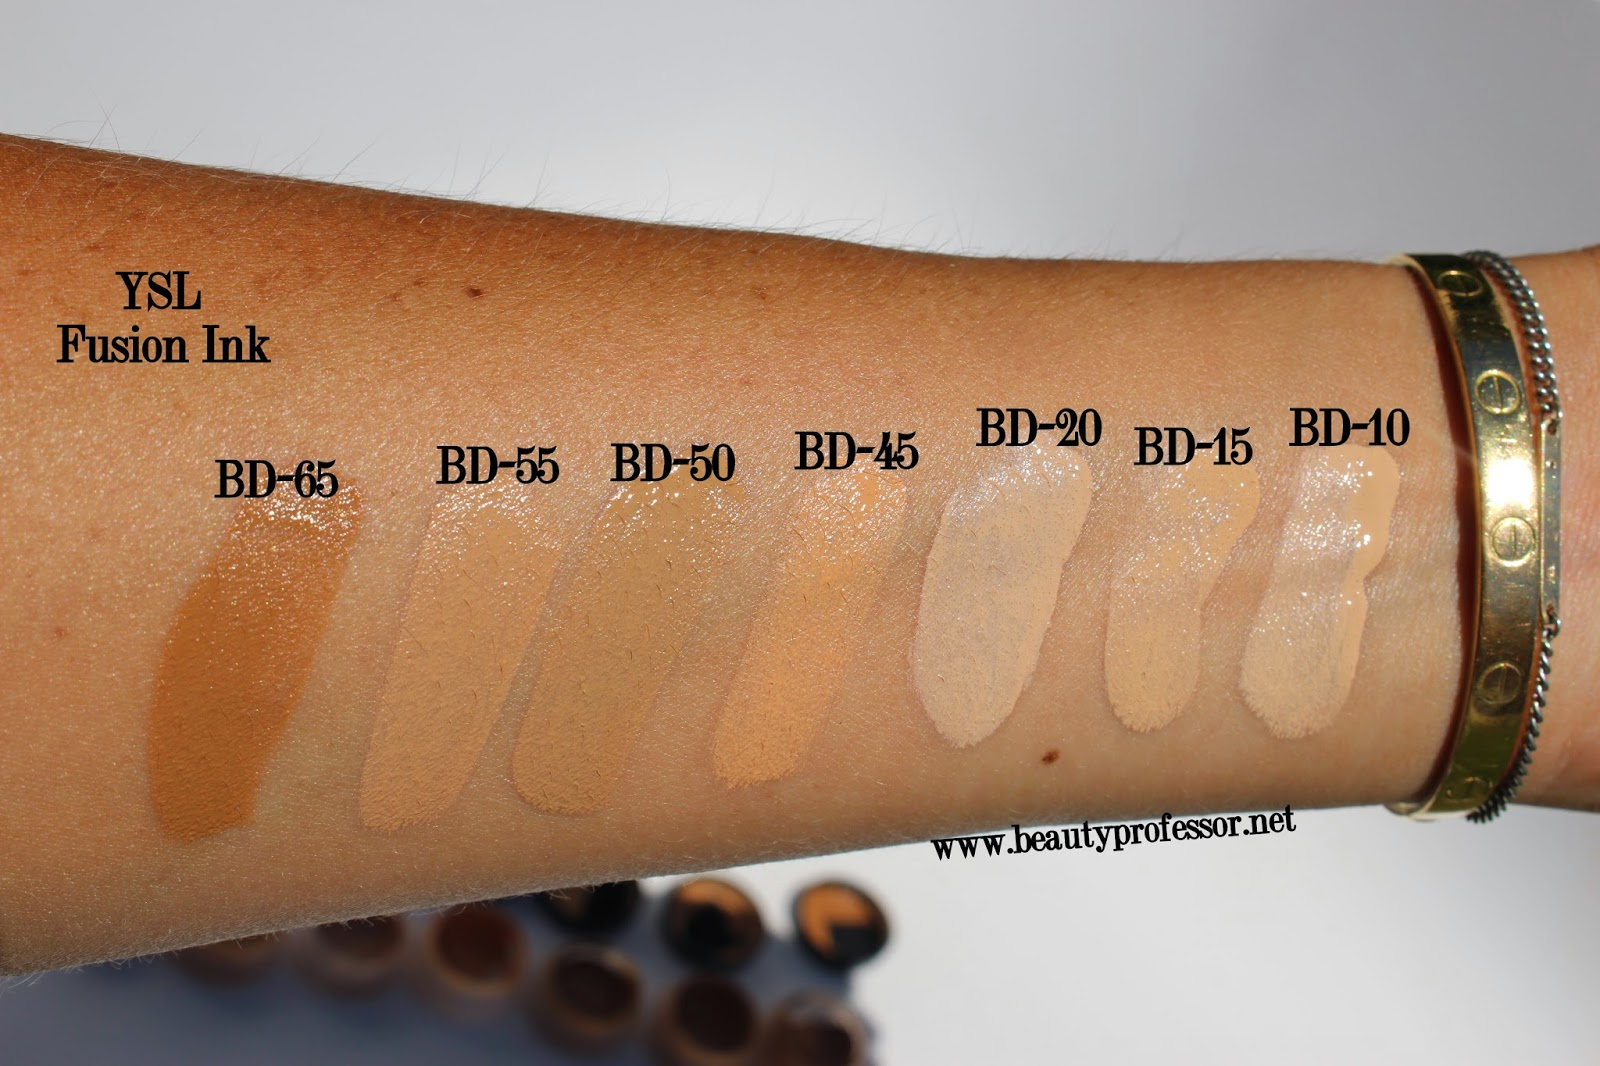 ysl fusion ink swatches